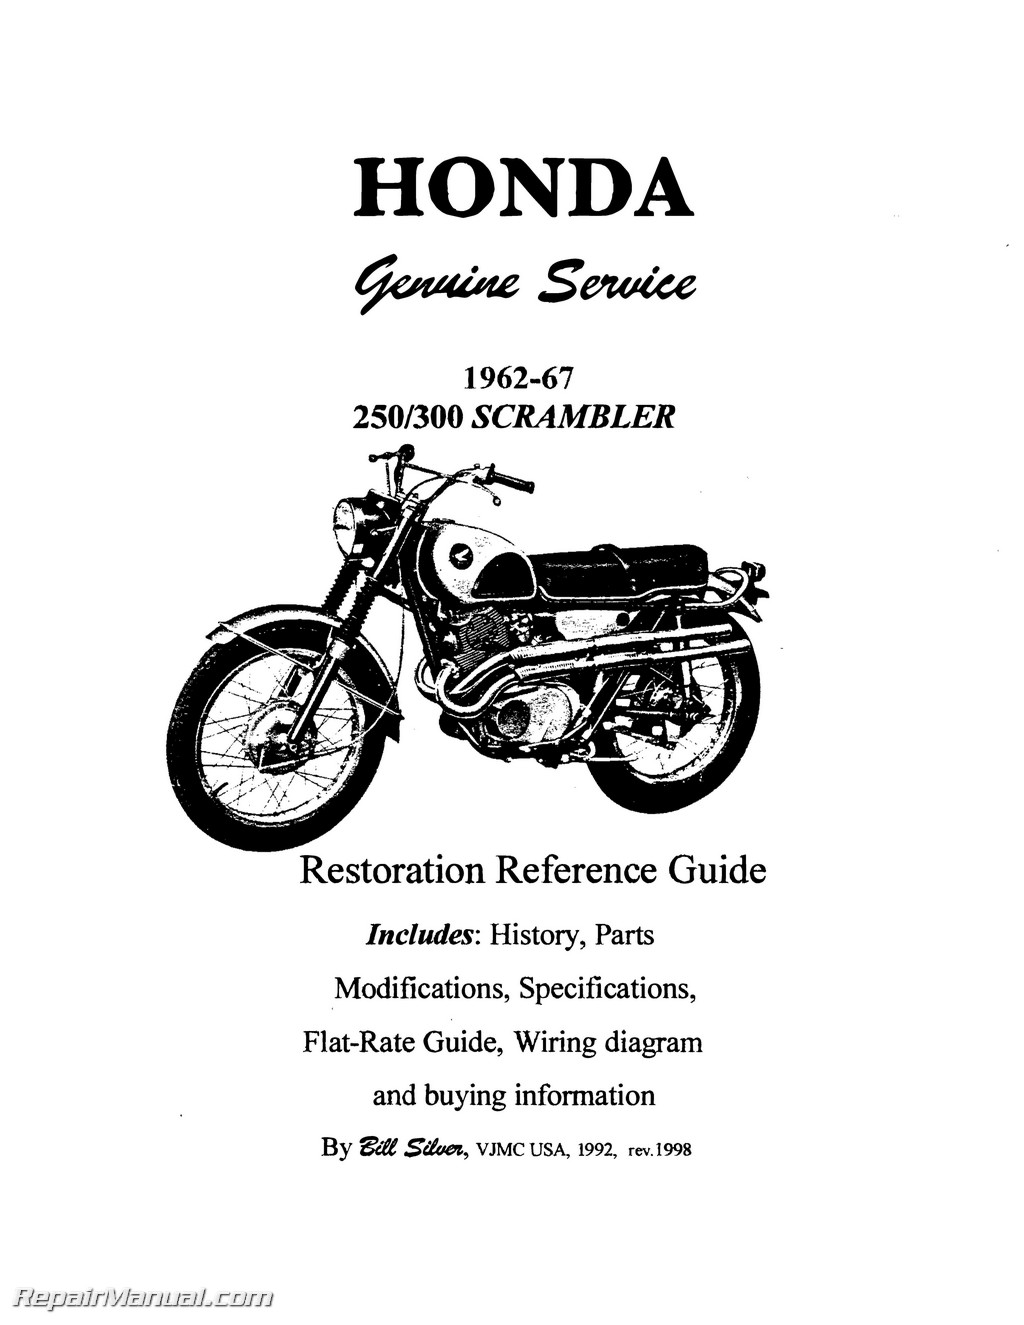 Honda SuperHawk Scrambler Motorcycle Restoration Reference